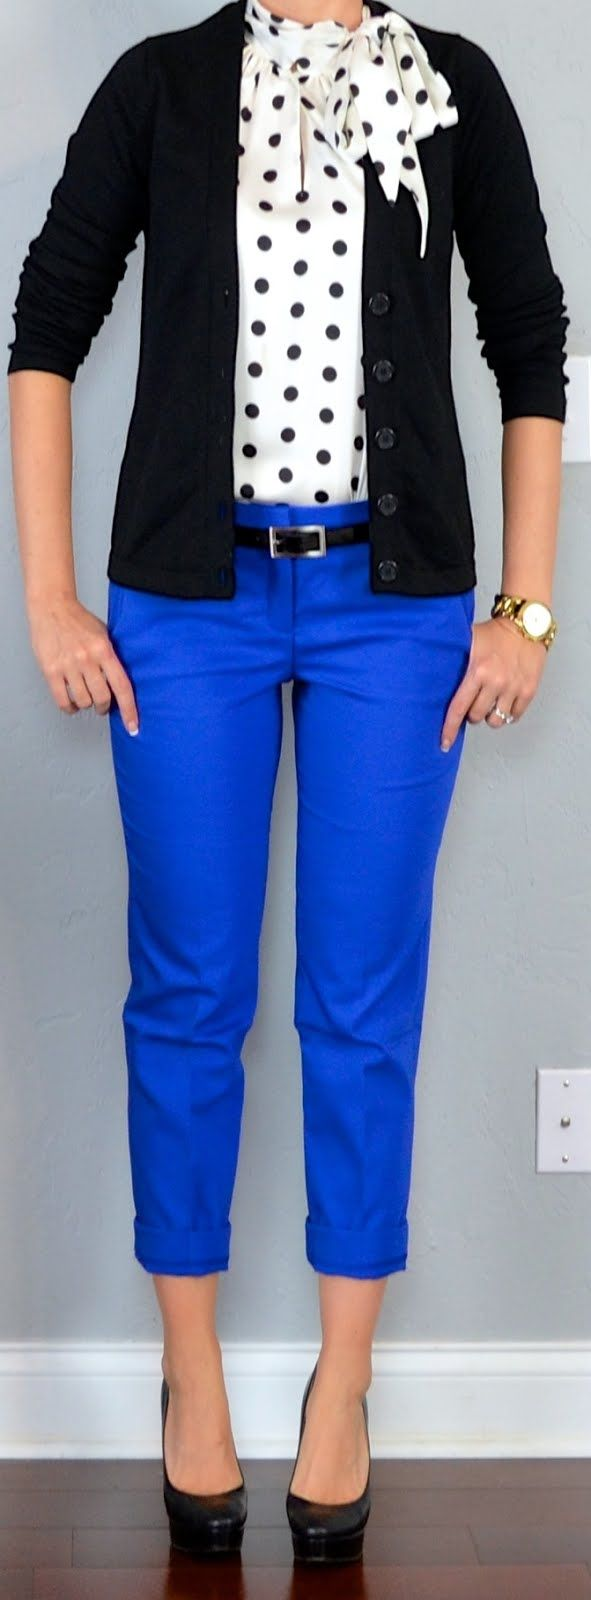 Best 25  Royal blue pants ideas only on Pinterest | Royal blue ...